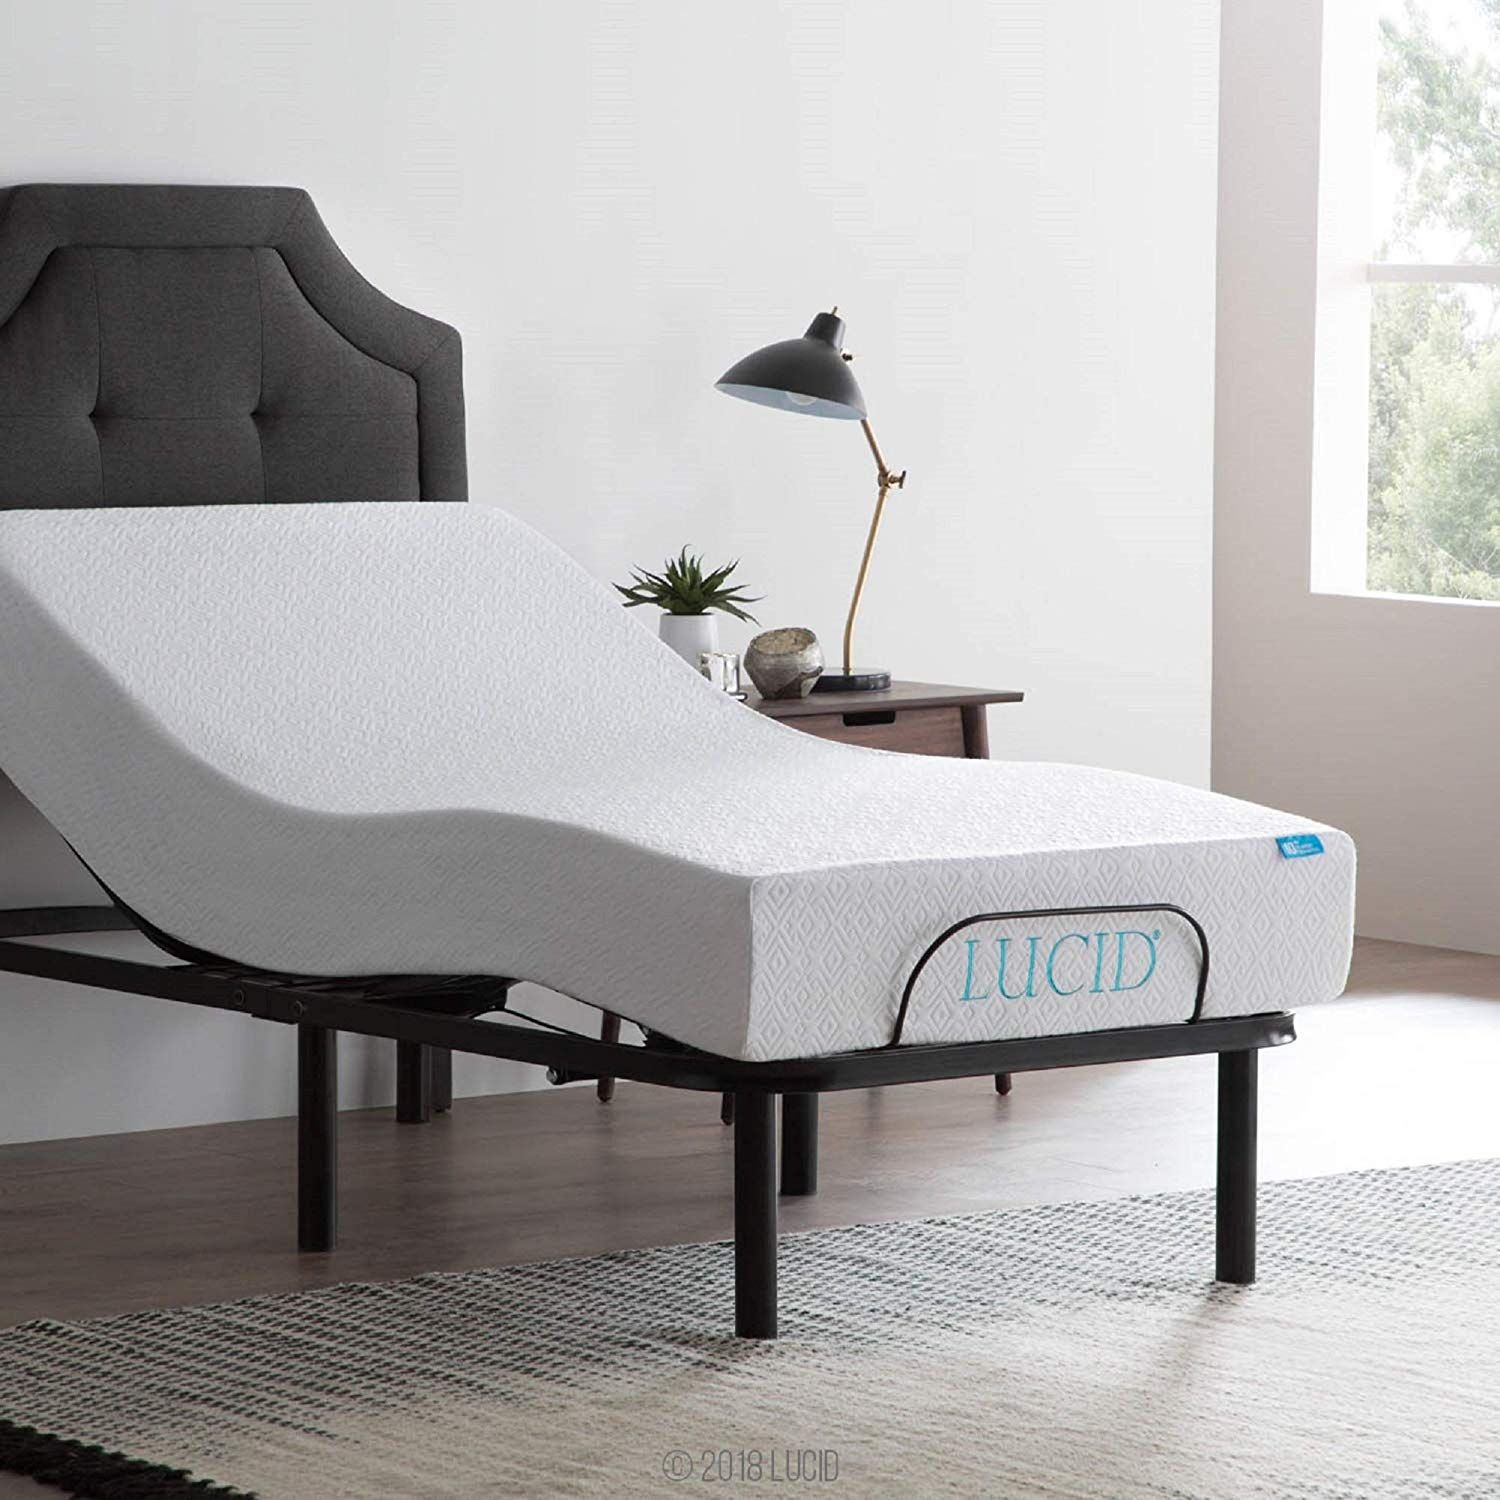 Lucid L100 Adjustable Bed Base With Lucid 10 Inch Gel Memory Foam Adjustable Bed Base Adjustable Beds Bed Base